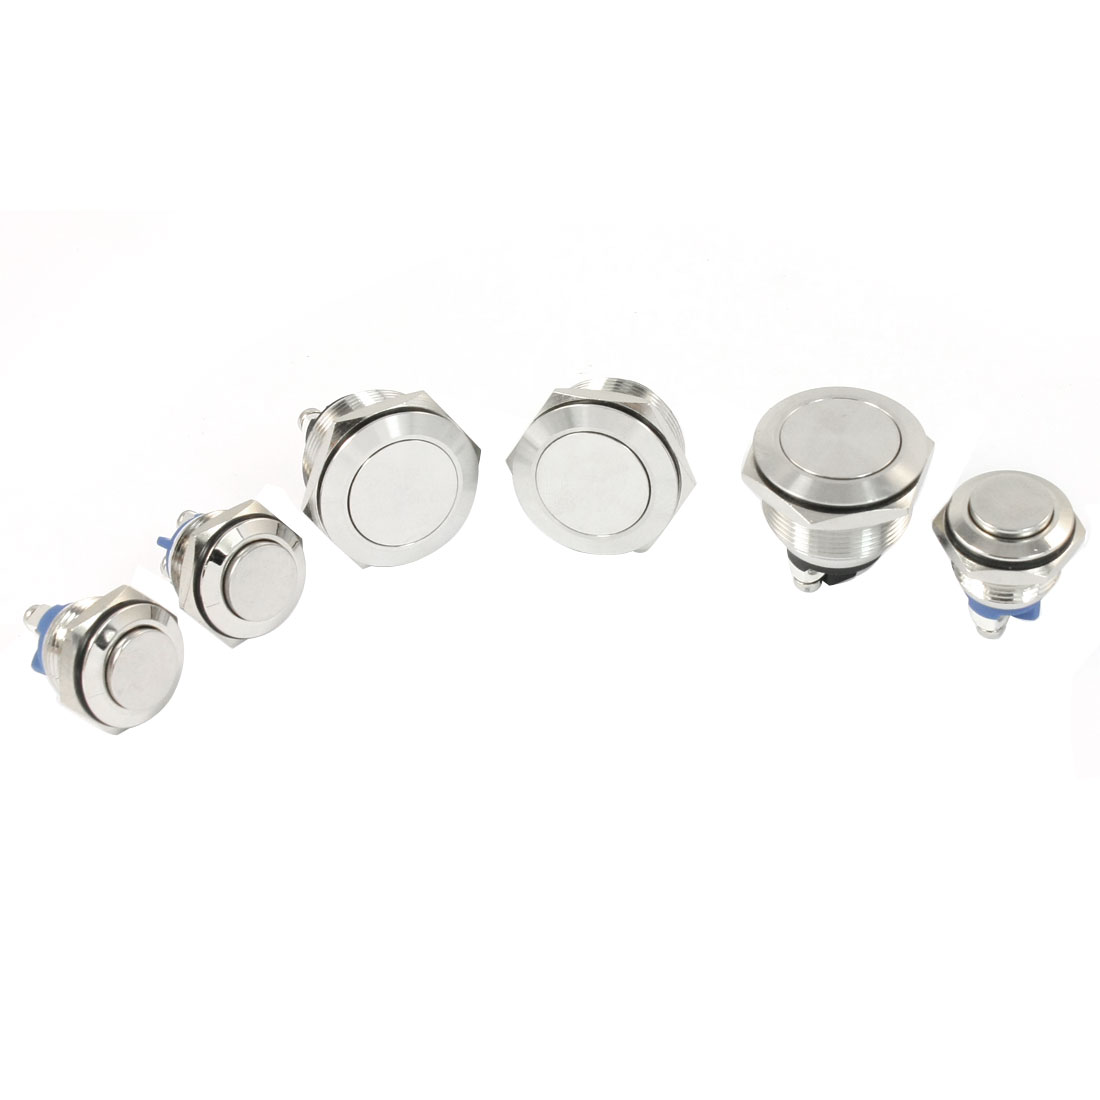 6 in 1 Set SPST Momentary Type Flat Head Push Button Switch Silver Tone 24V 3A